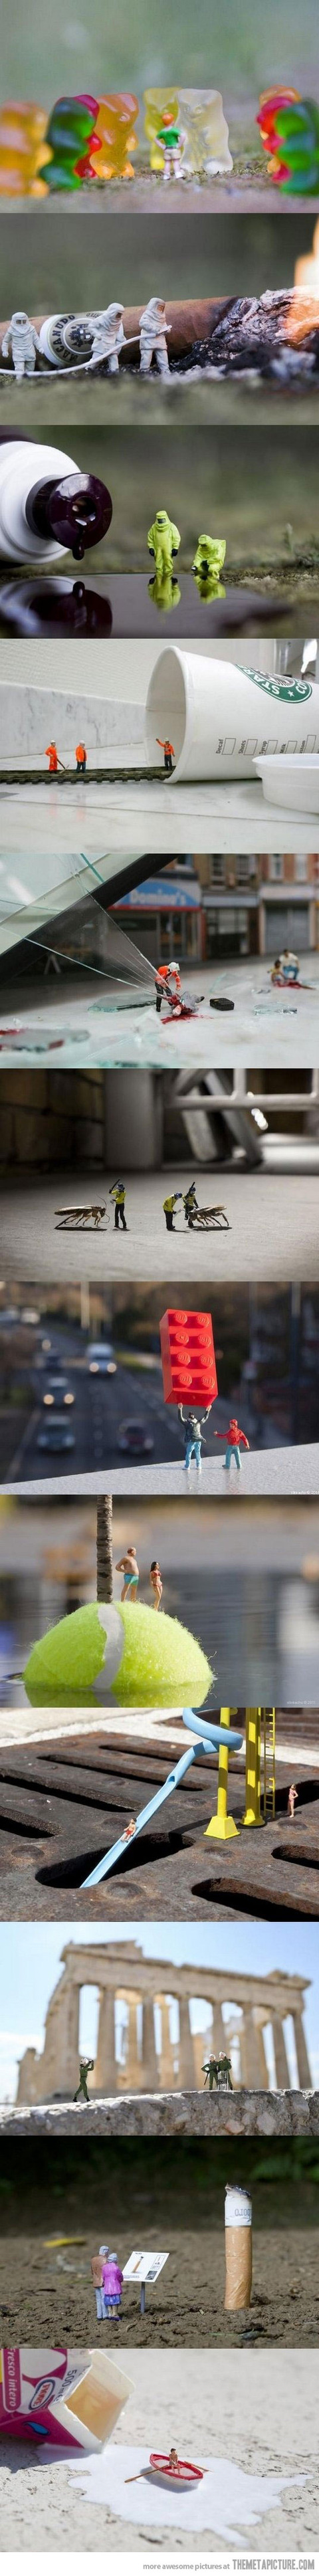 funny-art-toys-micro-world